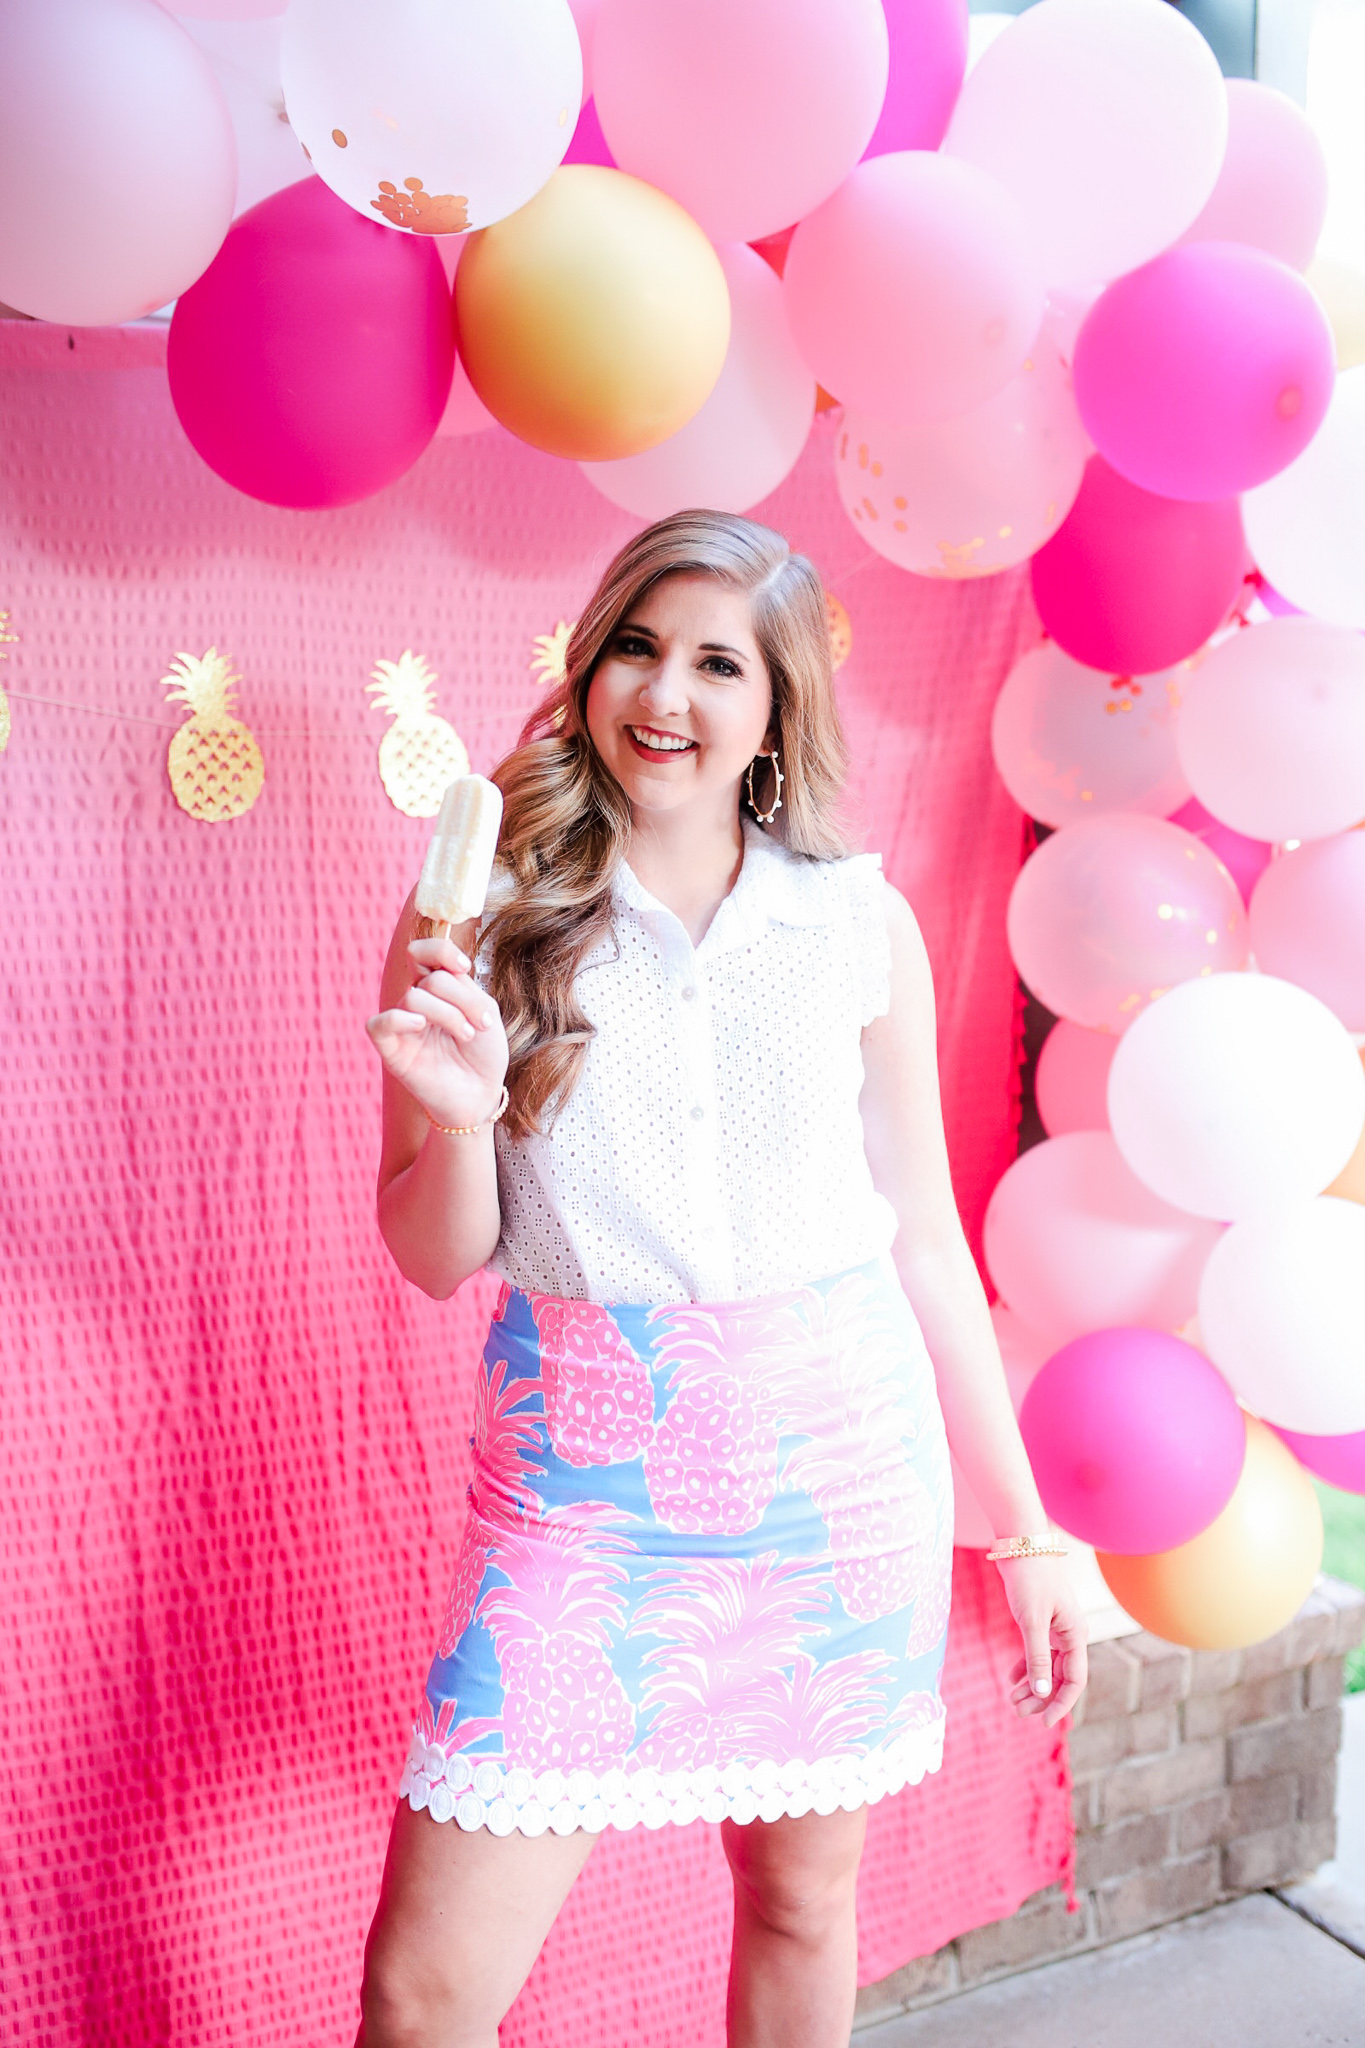 How To Make A Balloon Garland in Less Than an Hour